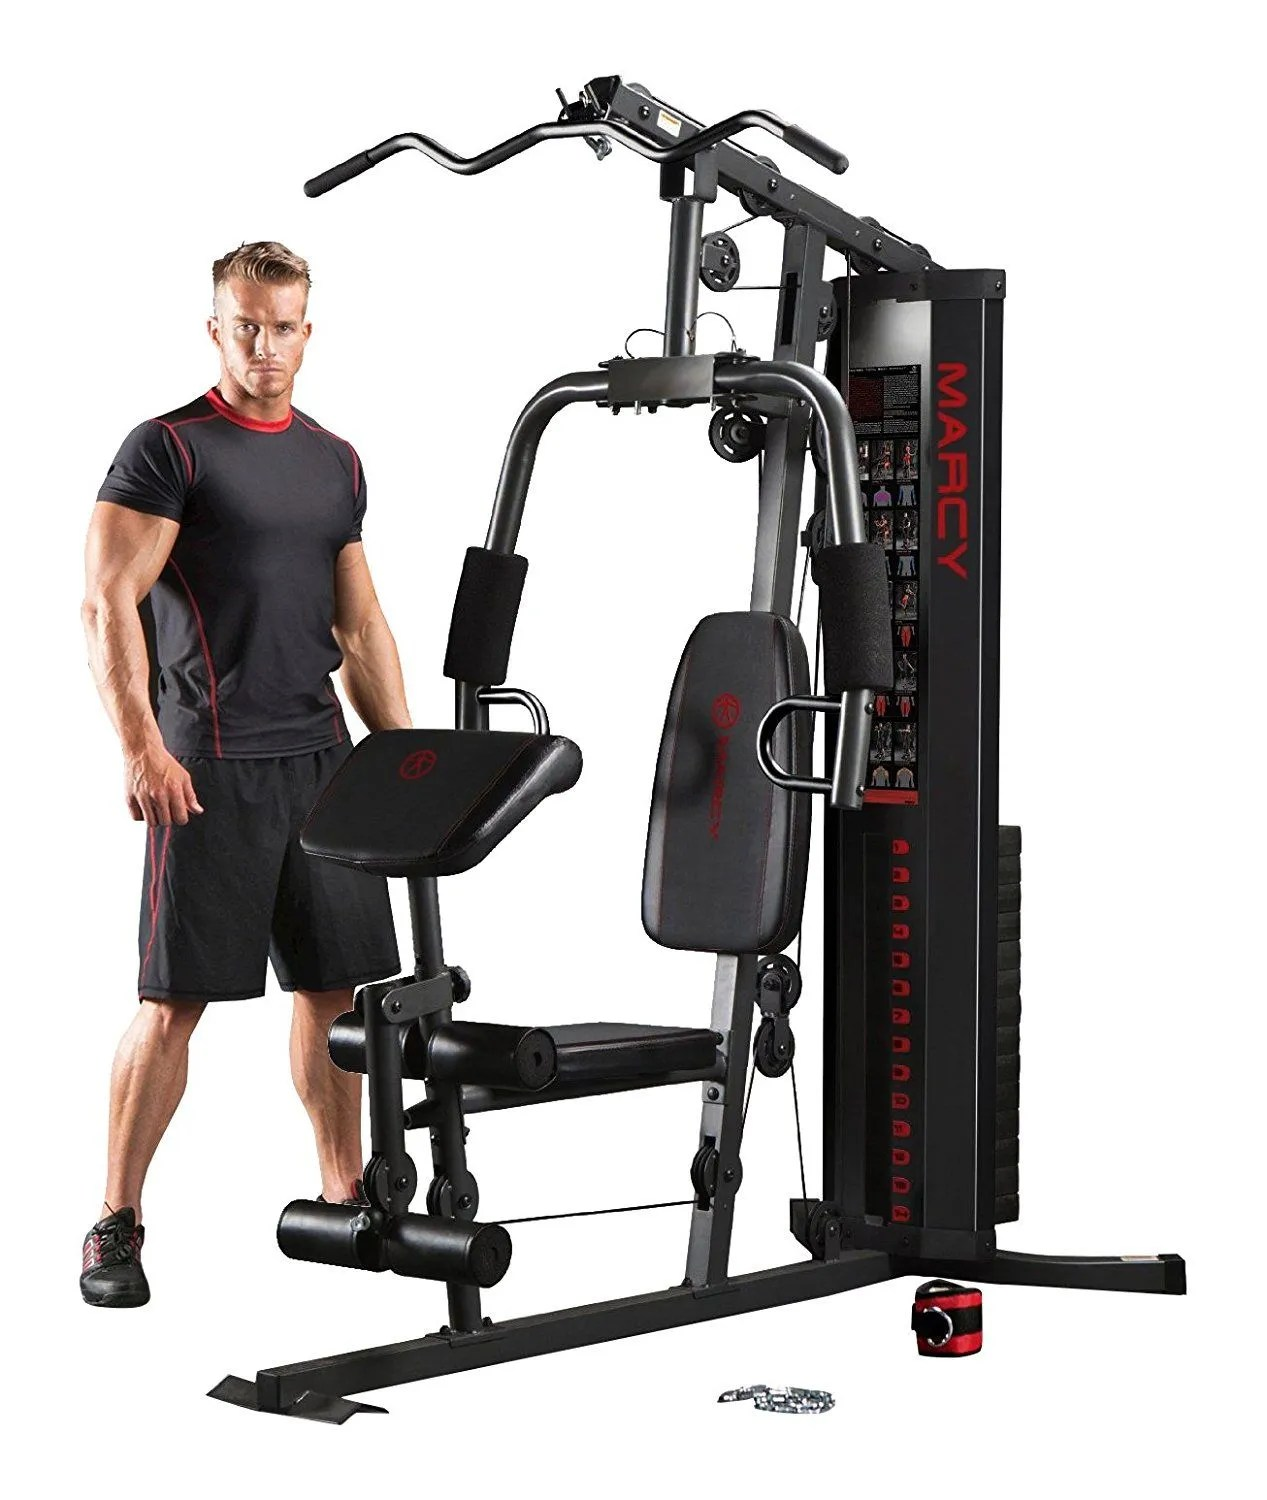 Marcy Eclipse HG3000 Compact Home Gym with Weight Stack